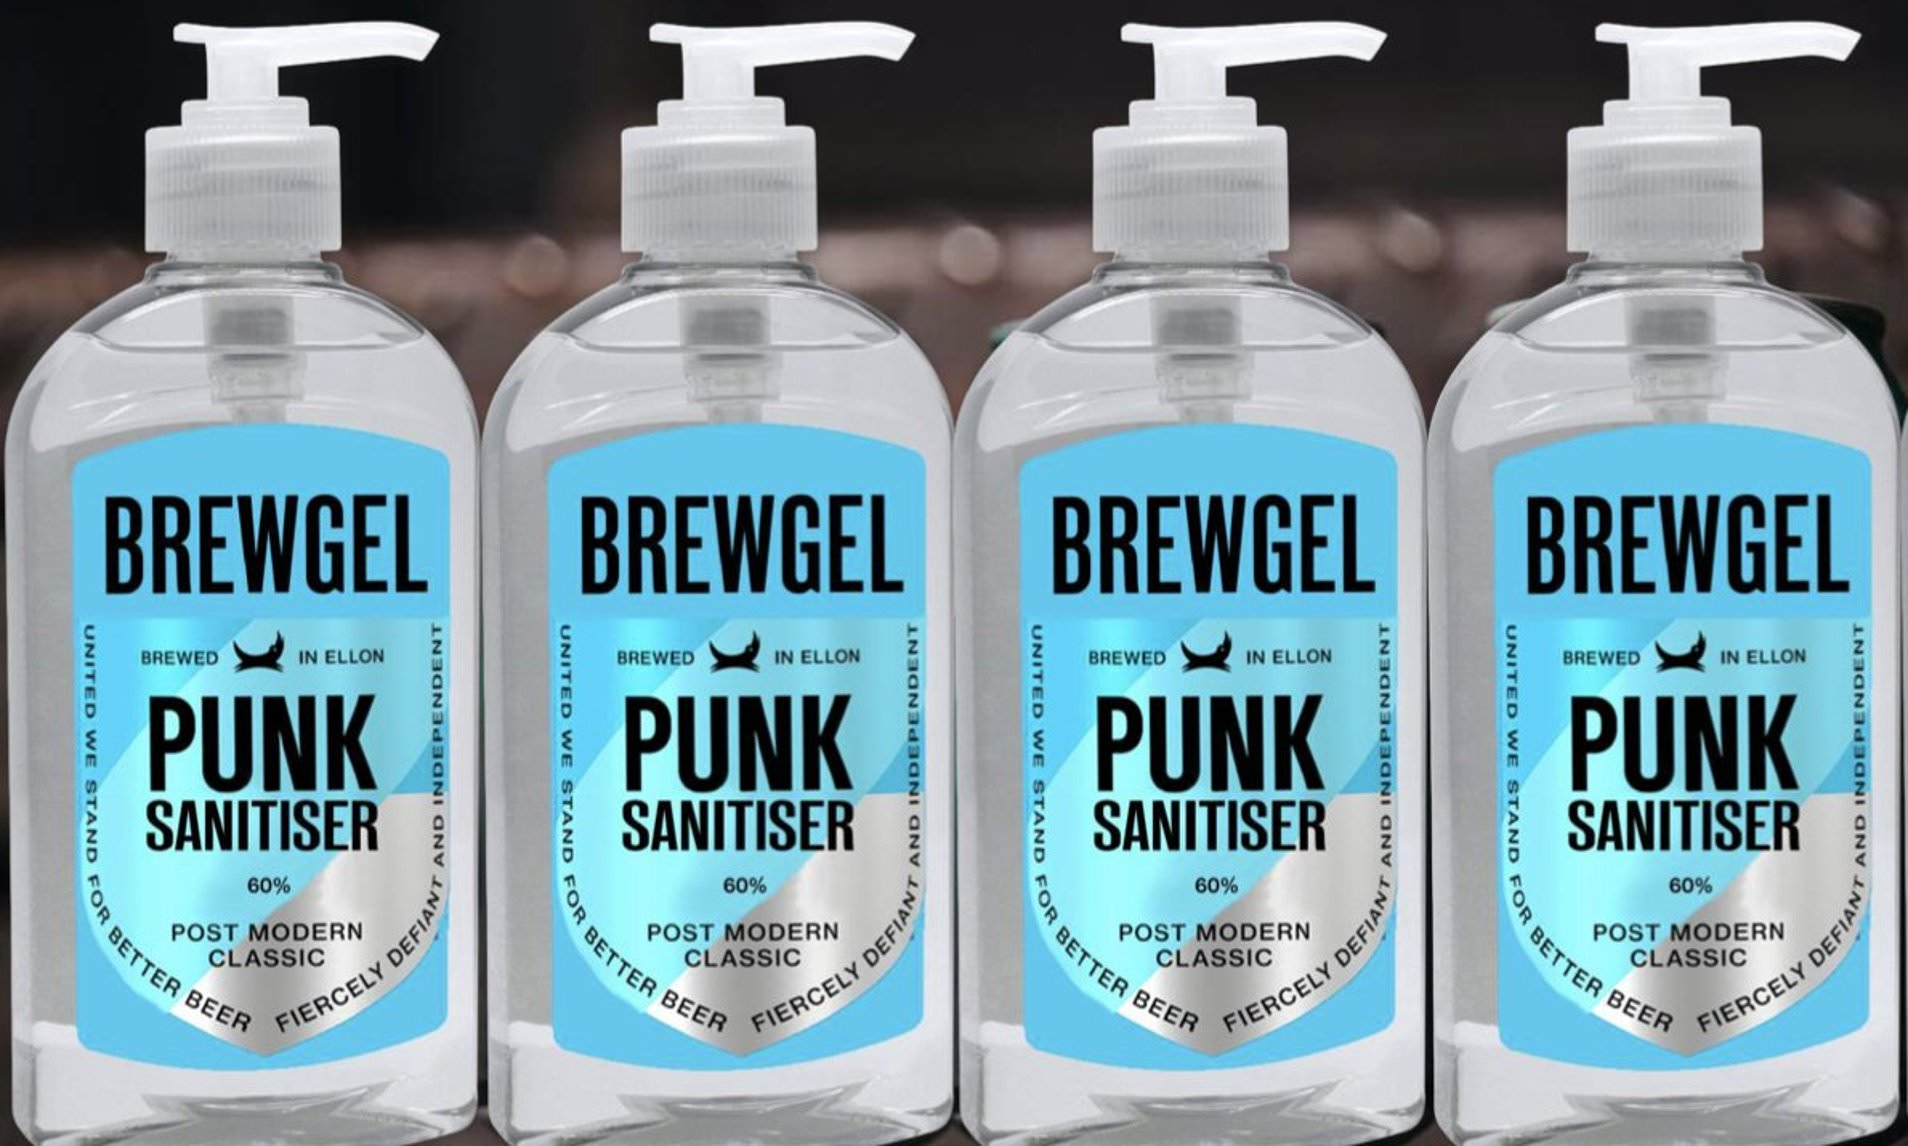 BrewDog hand sanitiser packaging